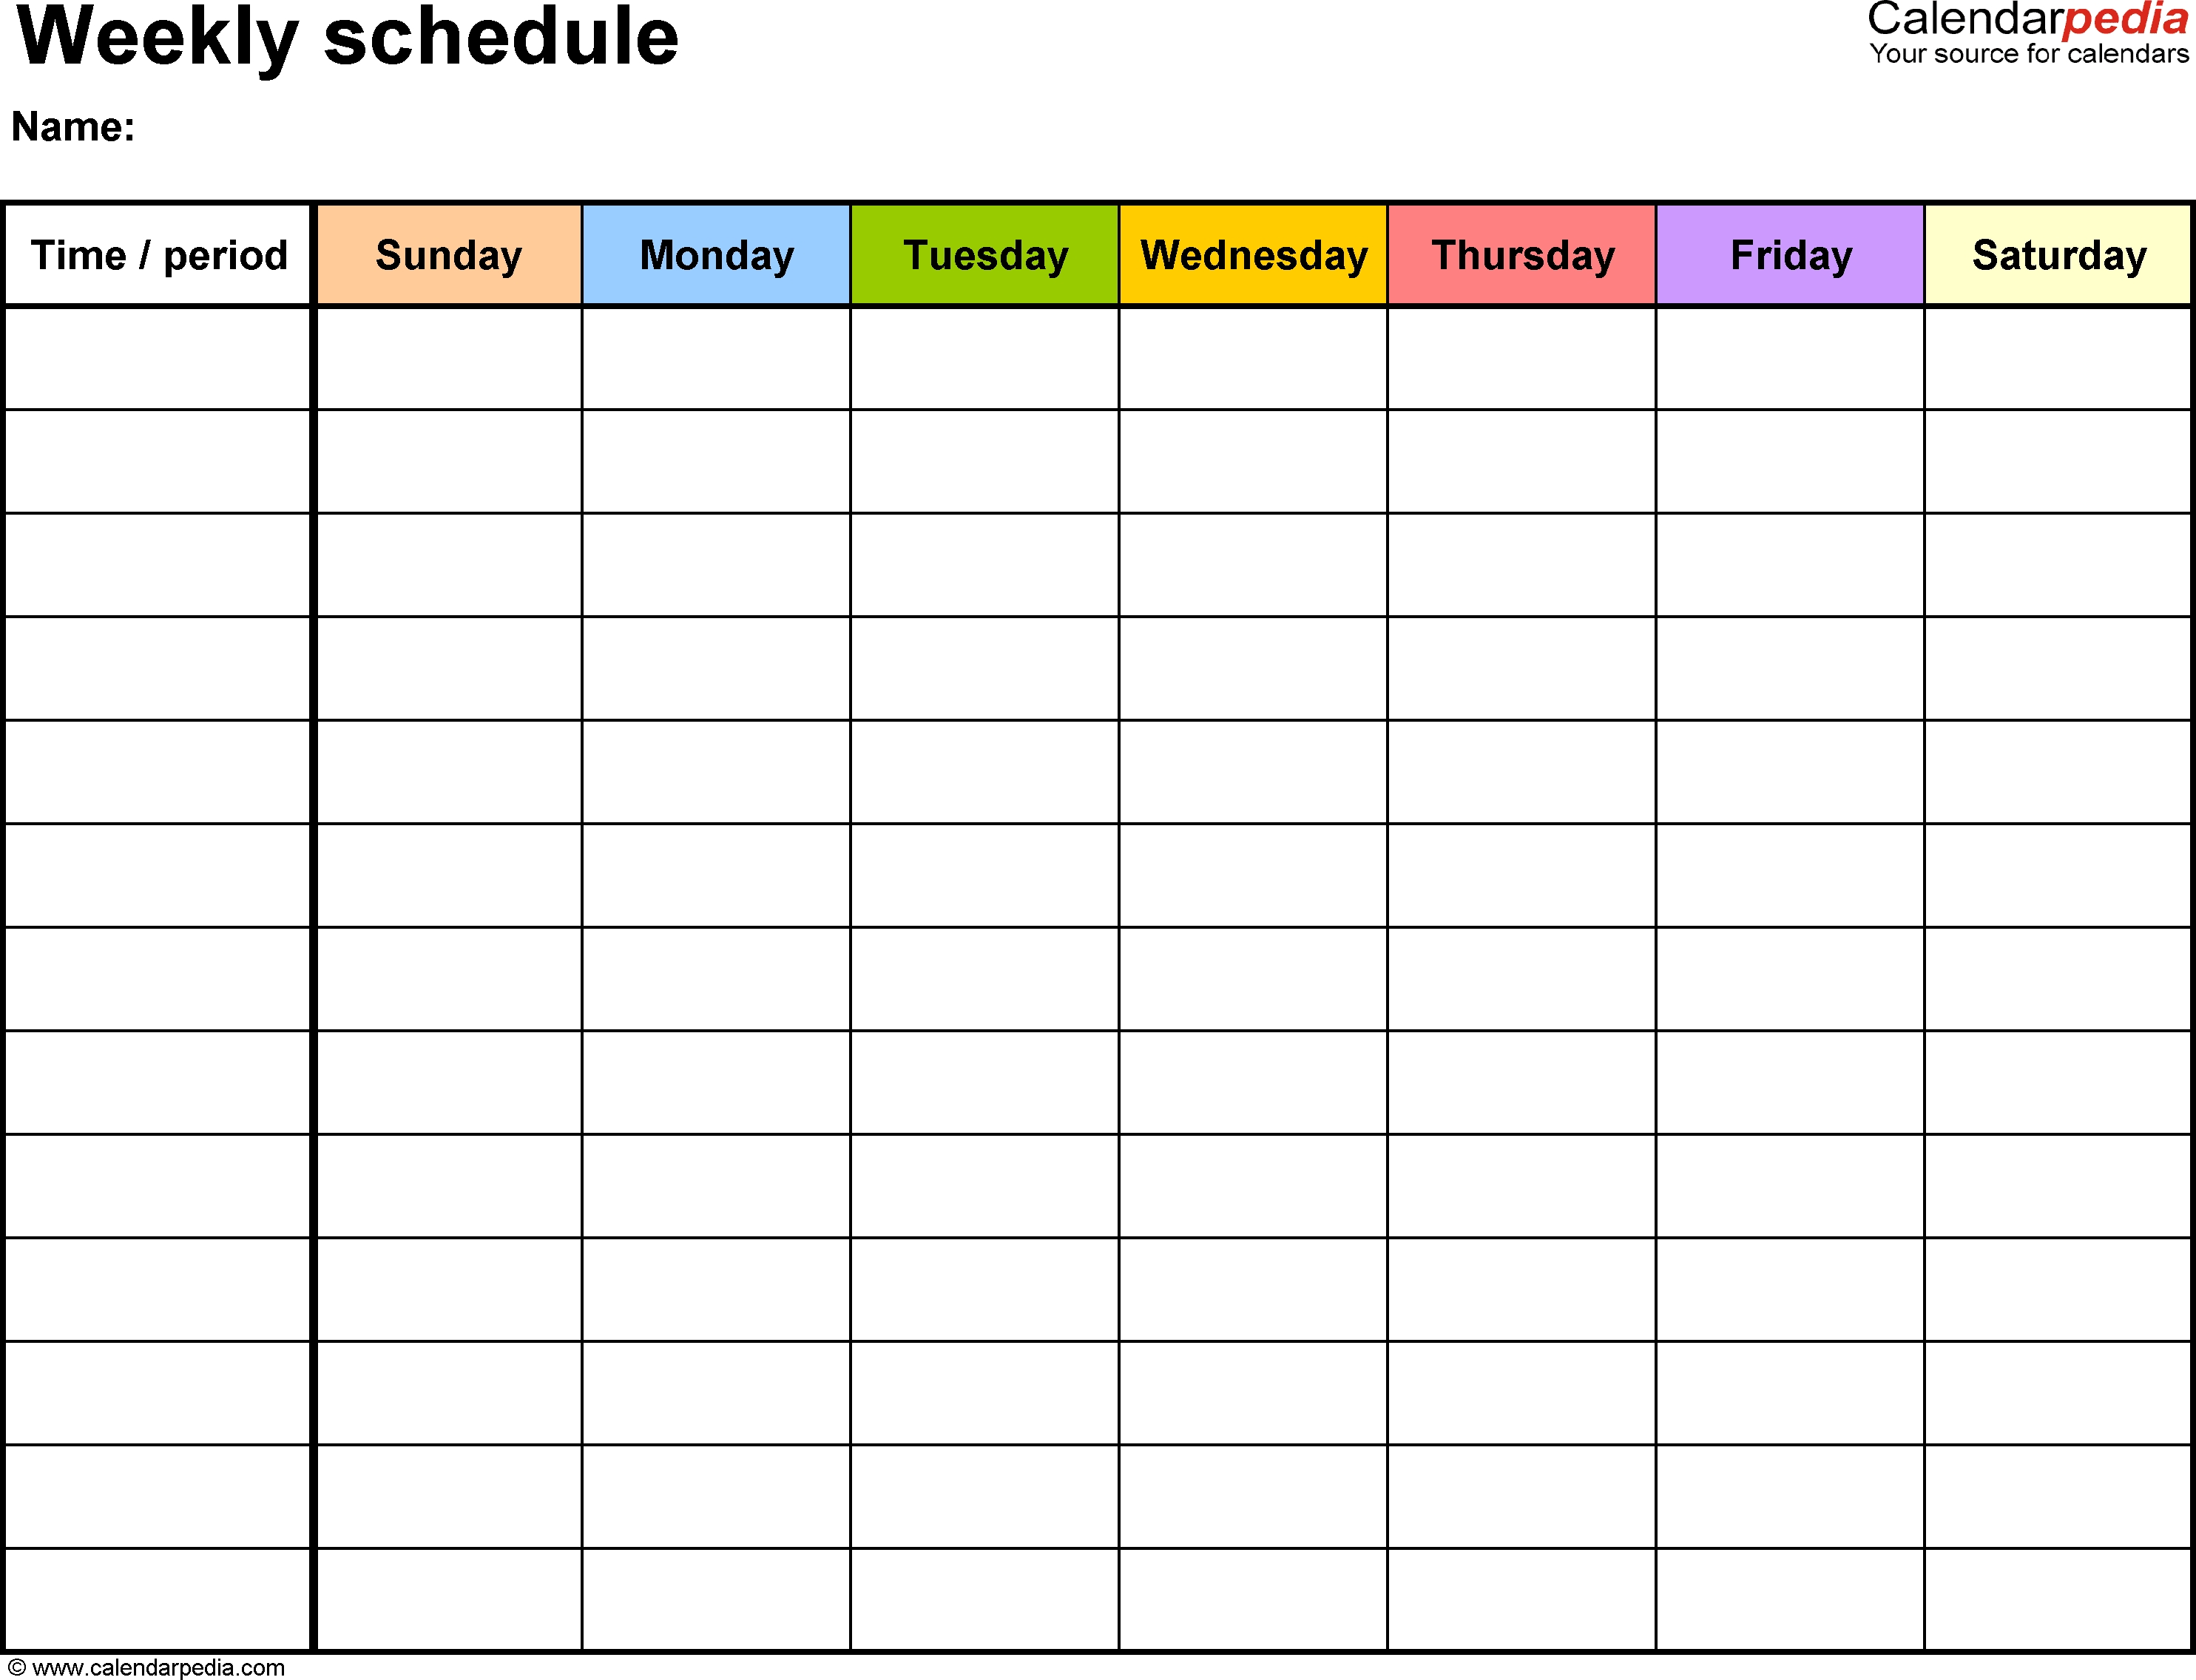 Free Weekly Schedule Templates For Excel - 18 Templates within Single Week Planner Page Monday-Friday